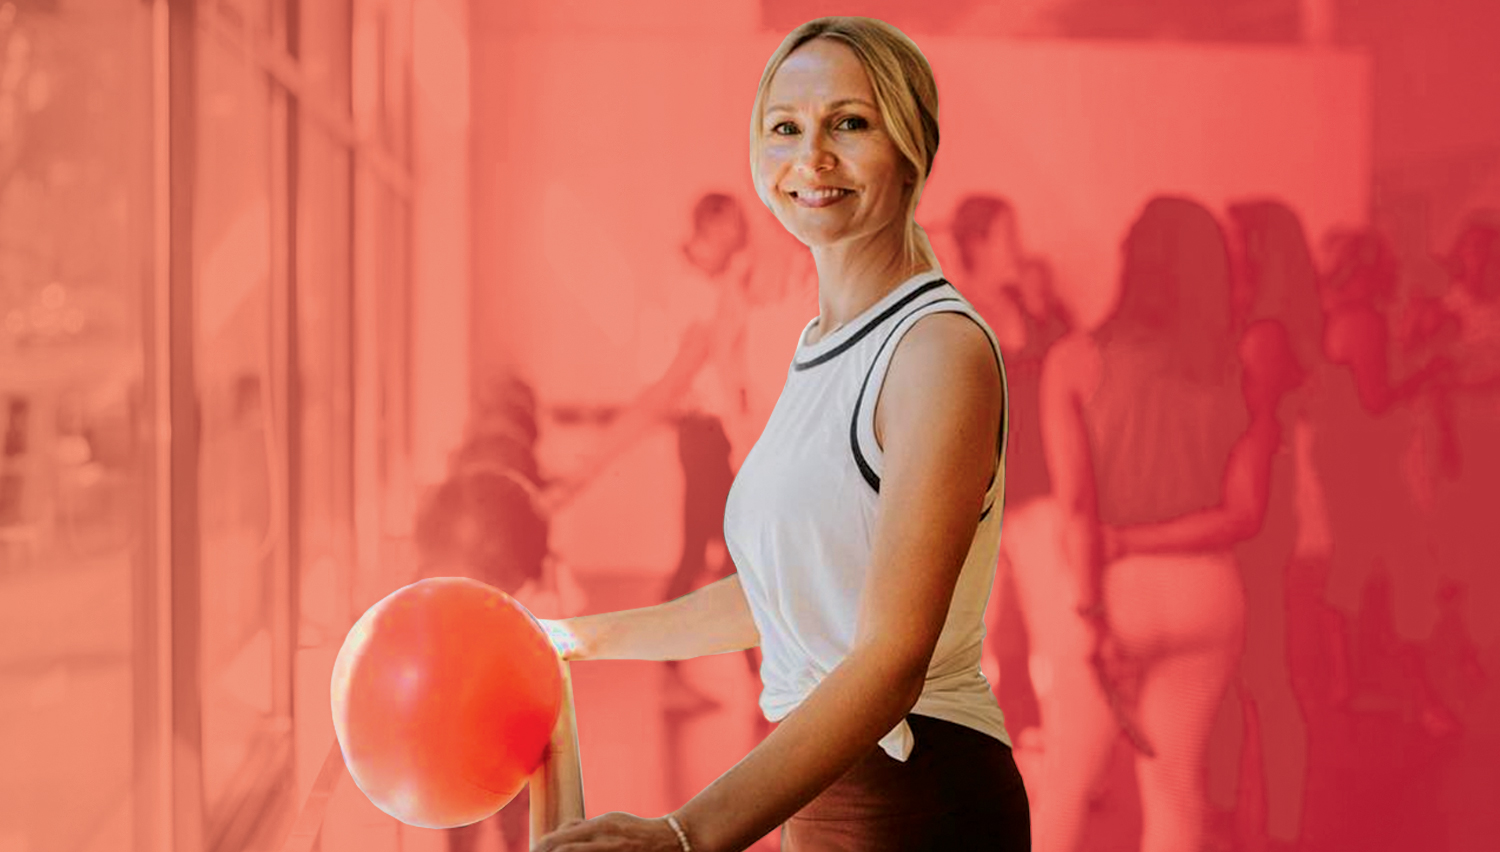 Get your fitness on! - Sadie Lincoln, the Co-Founder and CEO of barre3, is joining the #BlogHer19 Creators Summit lineup!